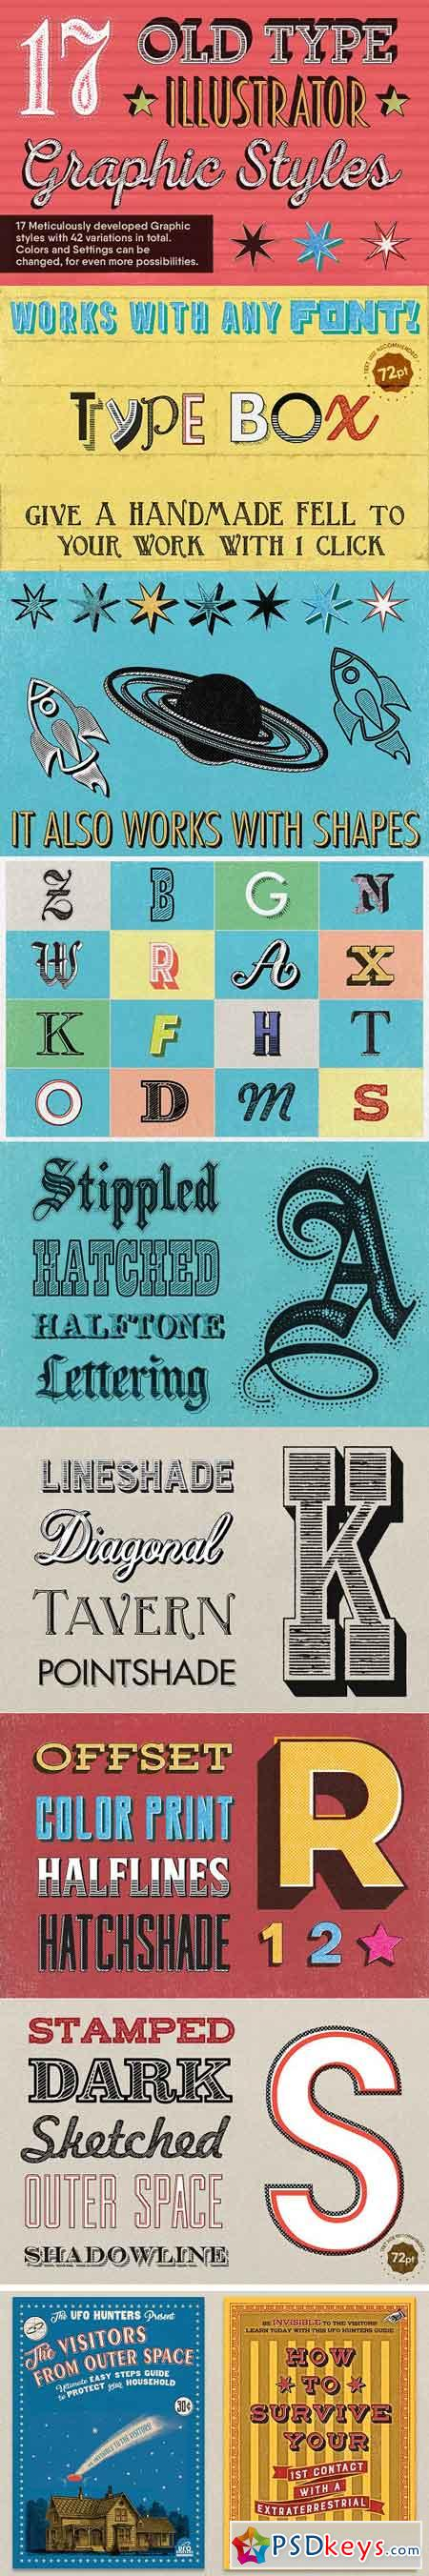 17 Old Type Graphic Styles 1283364